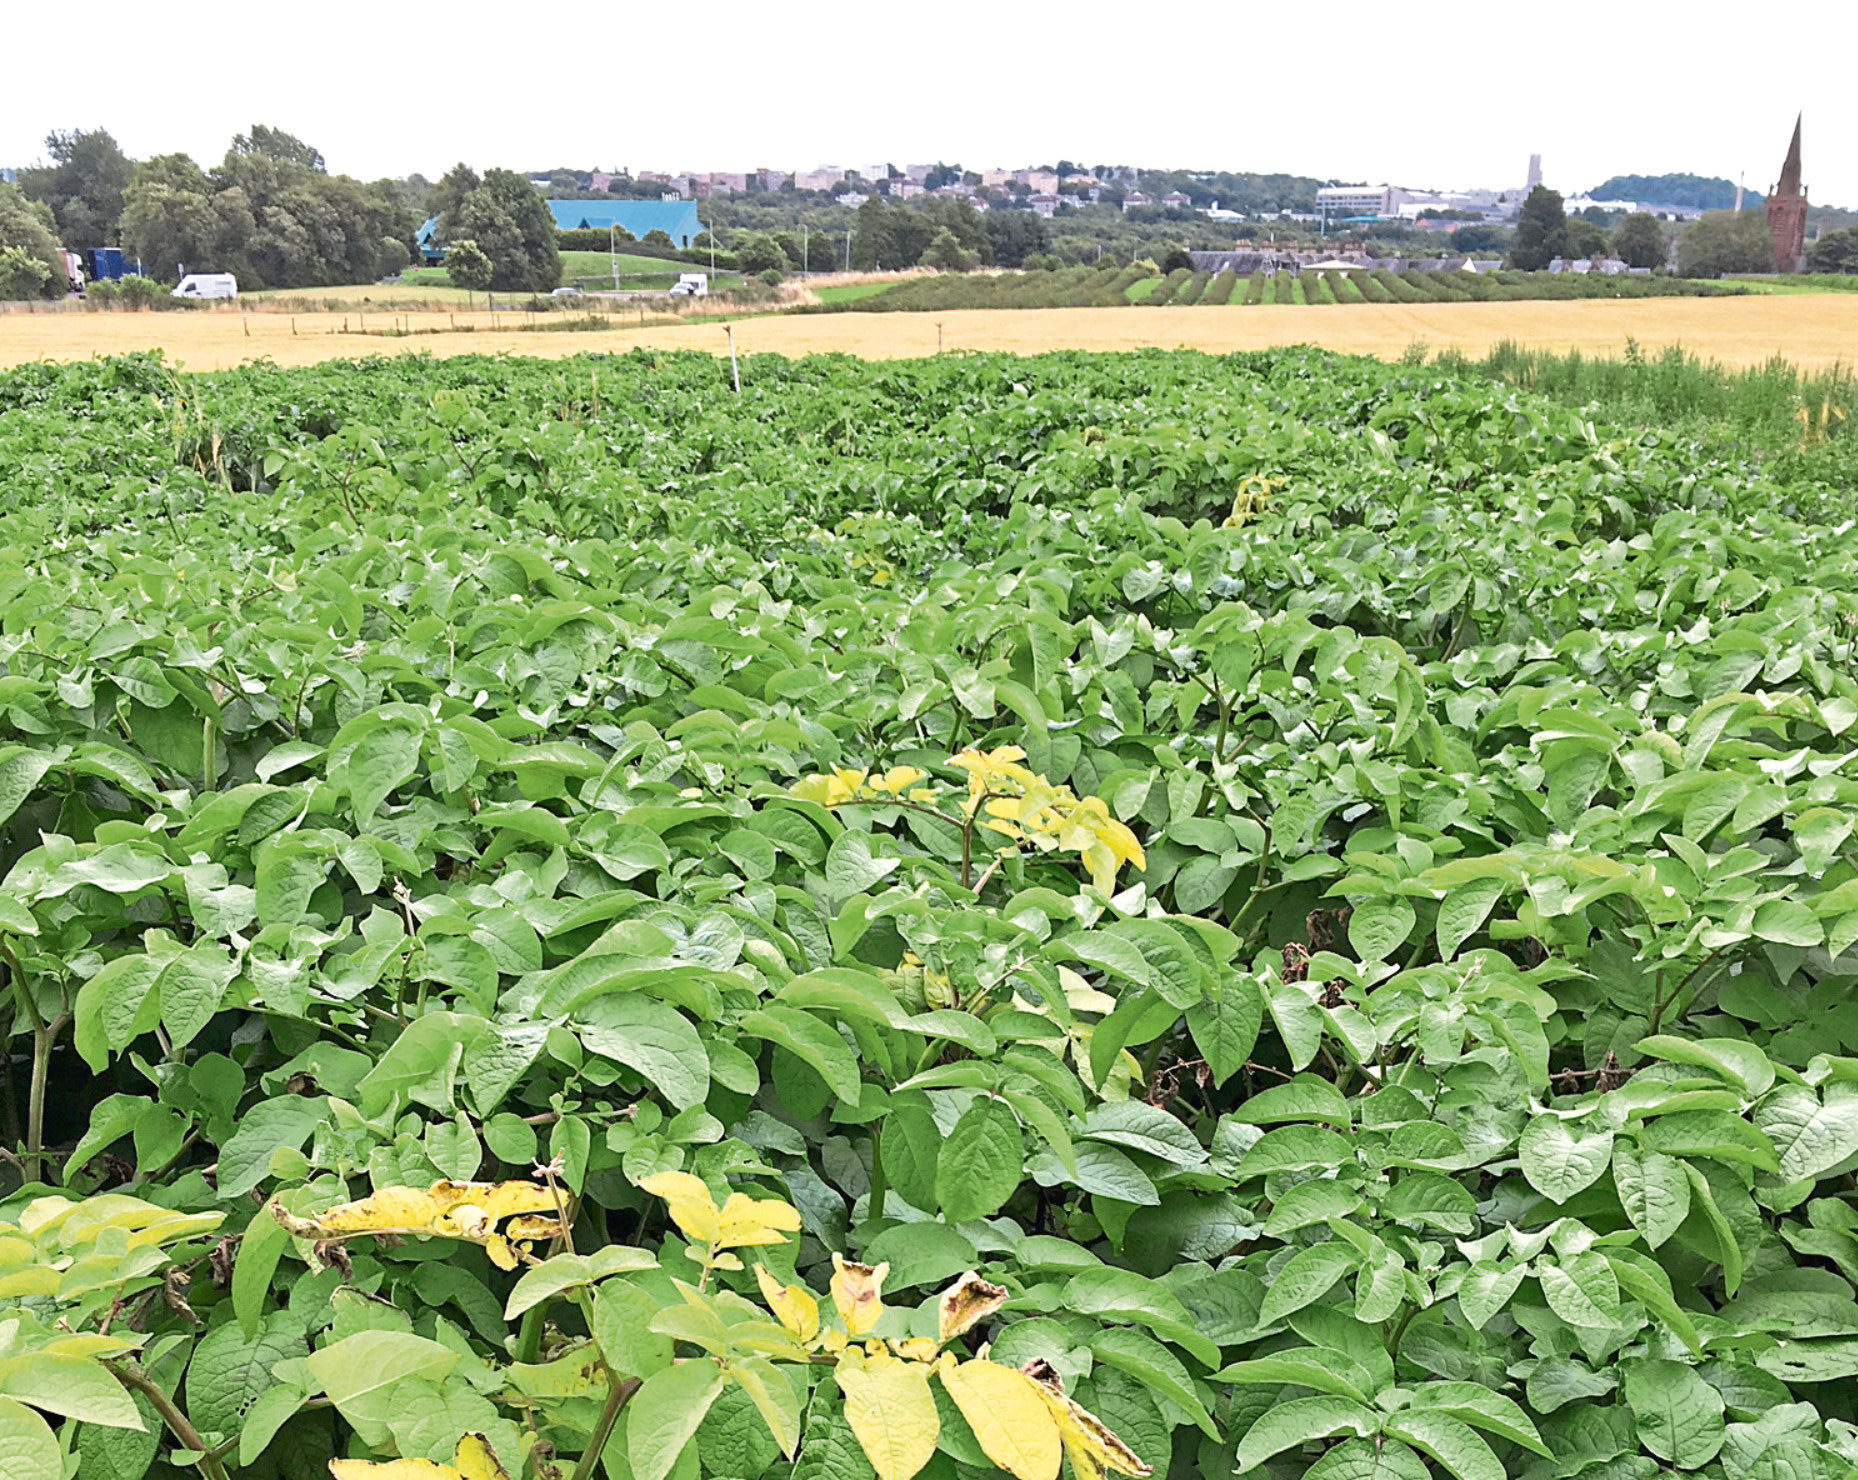 Targeted research is under way to combat blackleg disease, which can decimate potato crops.